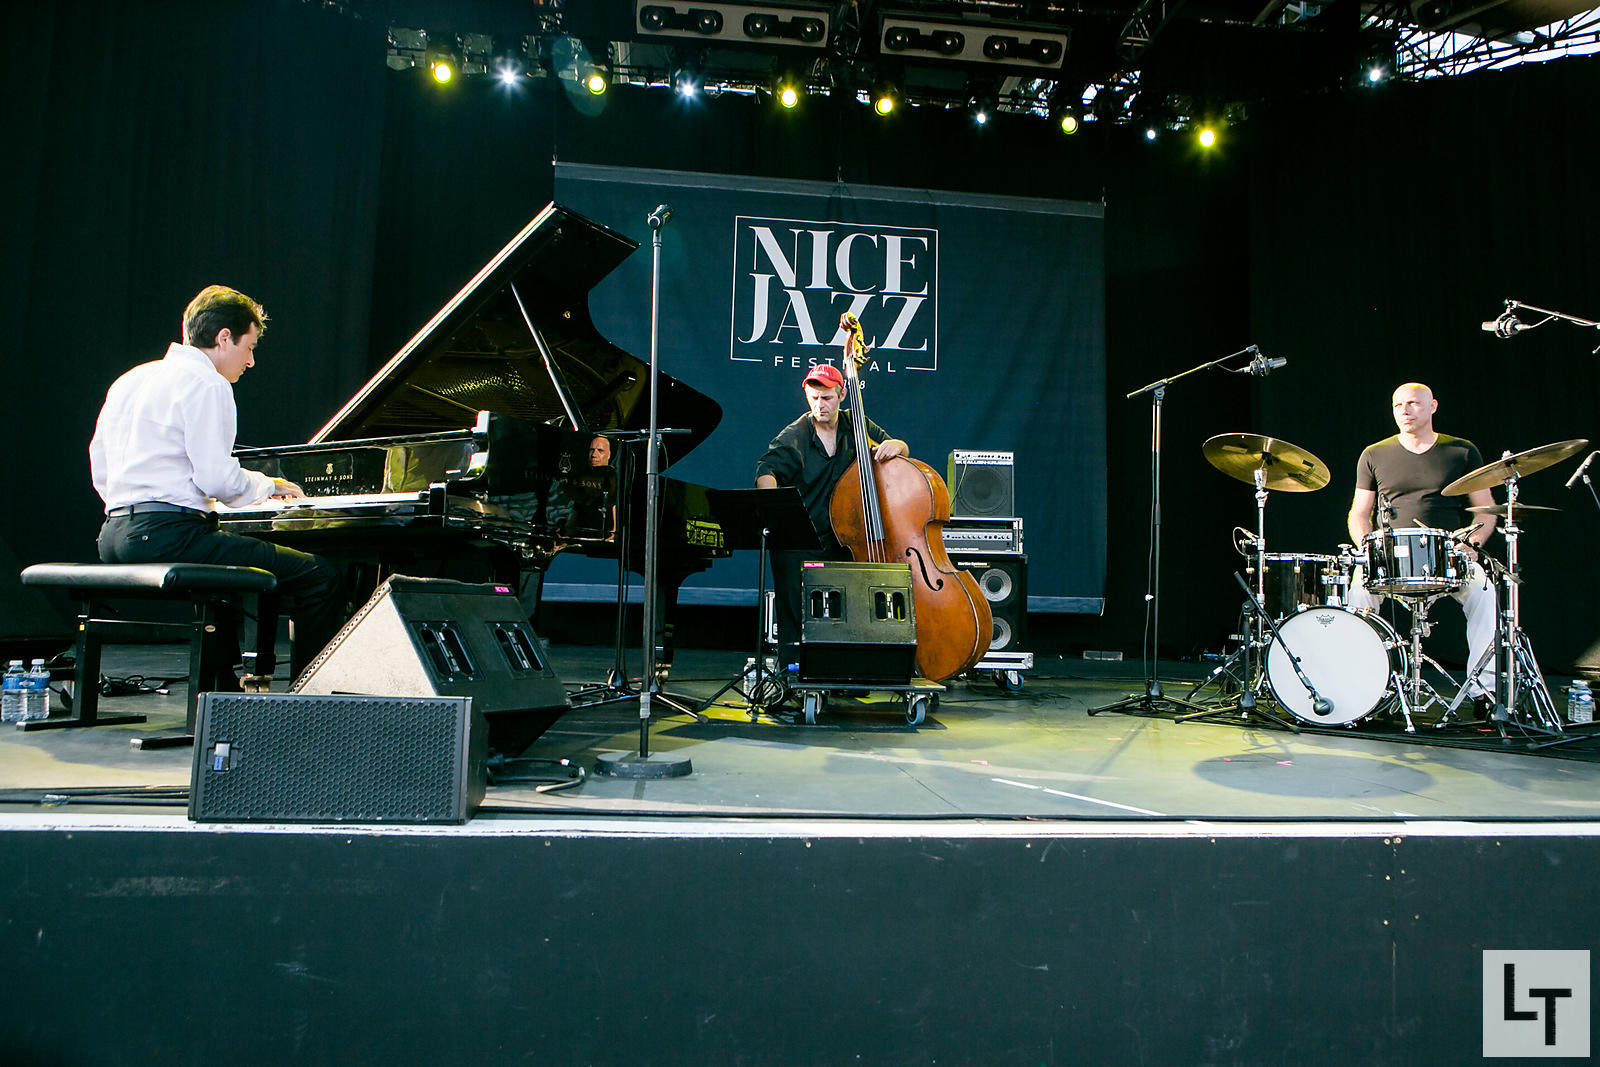 Fred d'Oelsnitz Trio, Nice Jazz Festival le 7 Juillet 2015